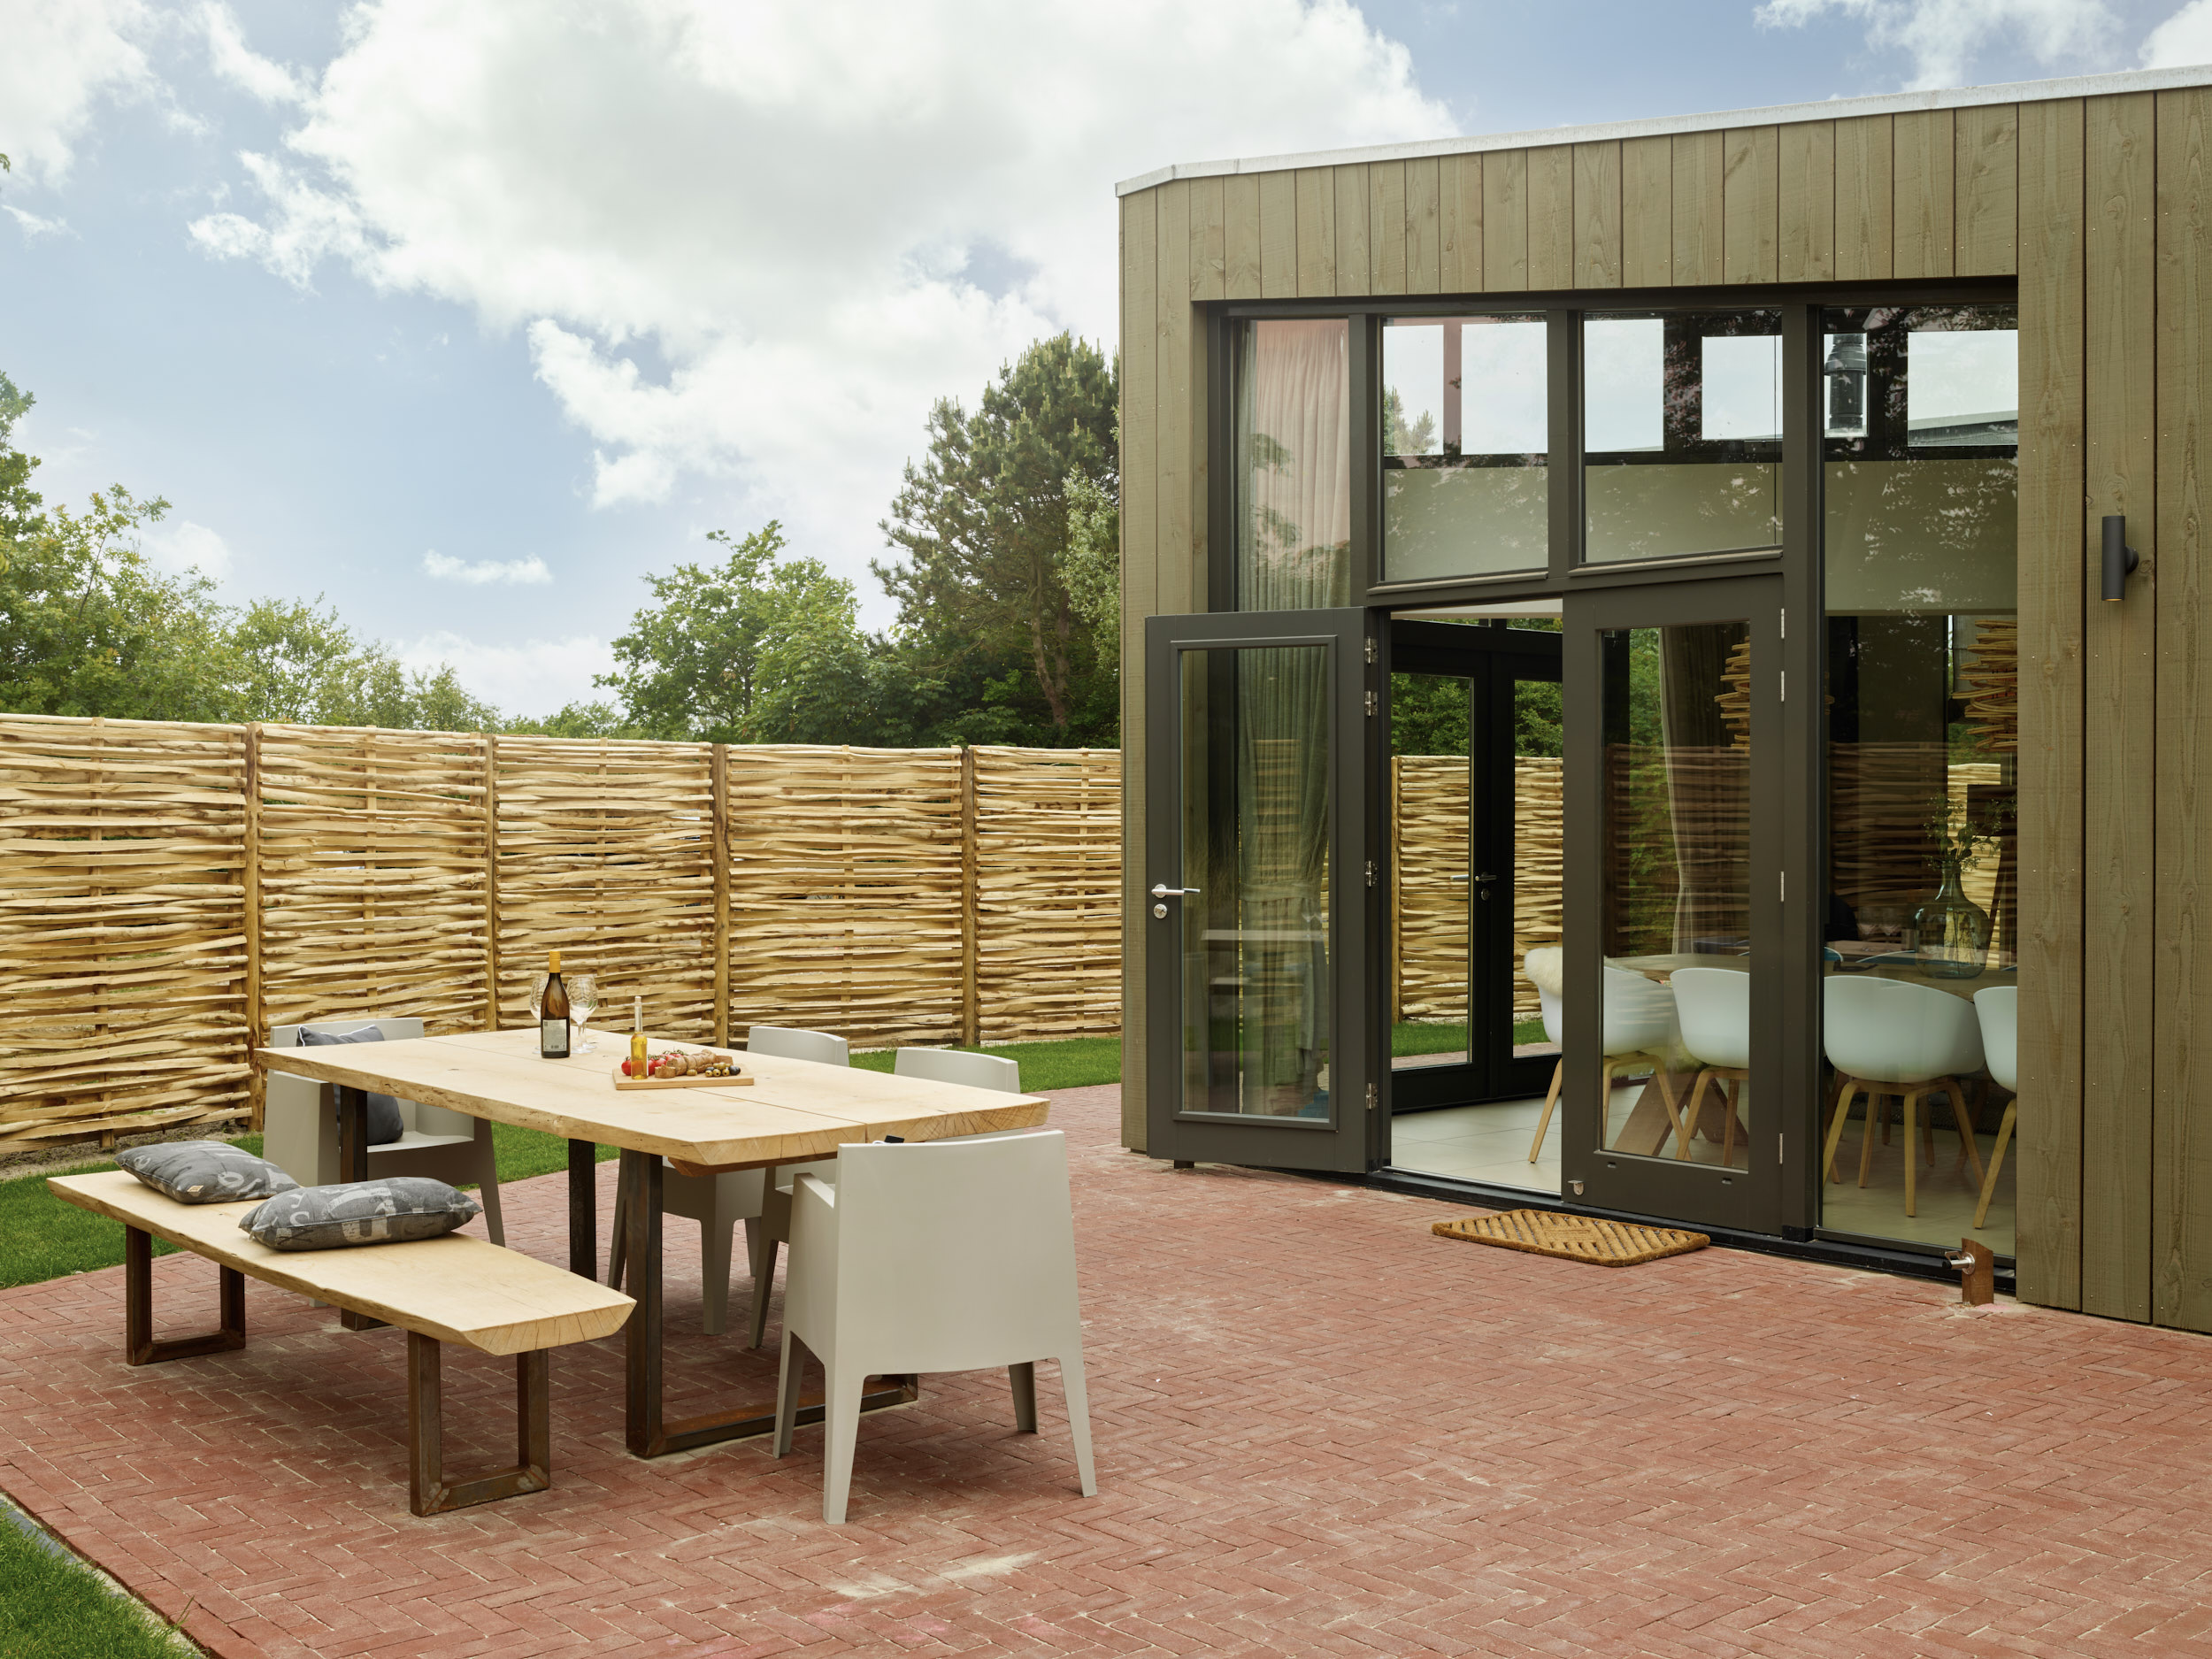 Duingolf - interieur ontwerp (1) | Hinabaay